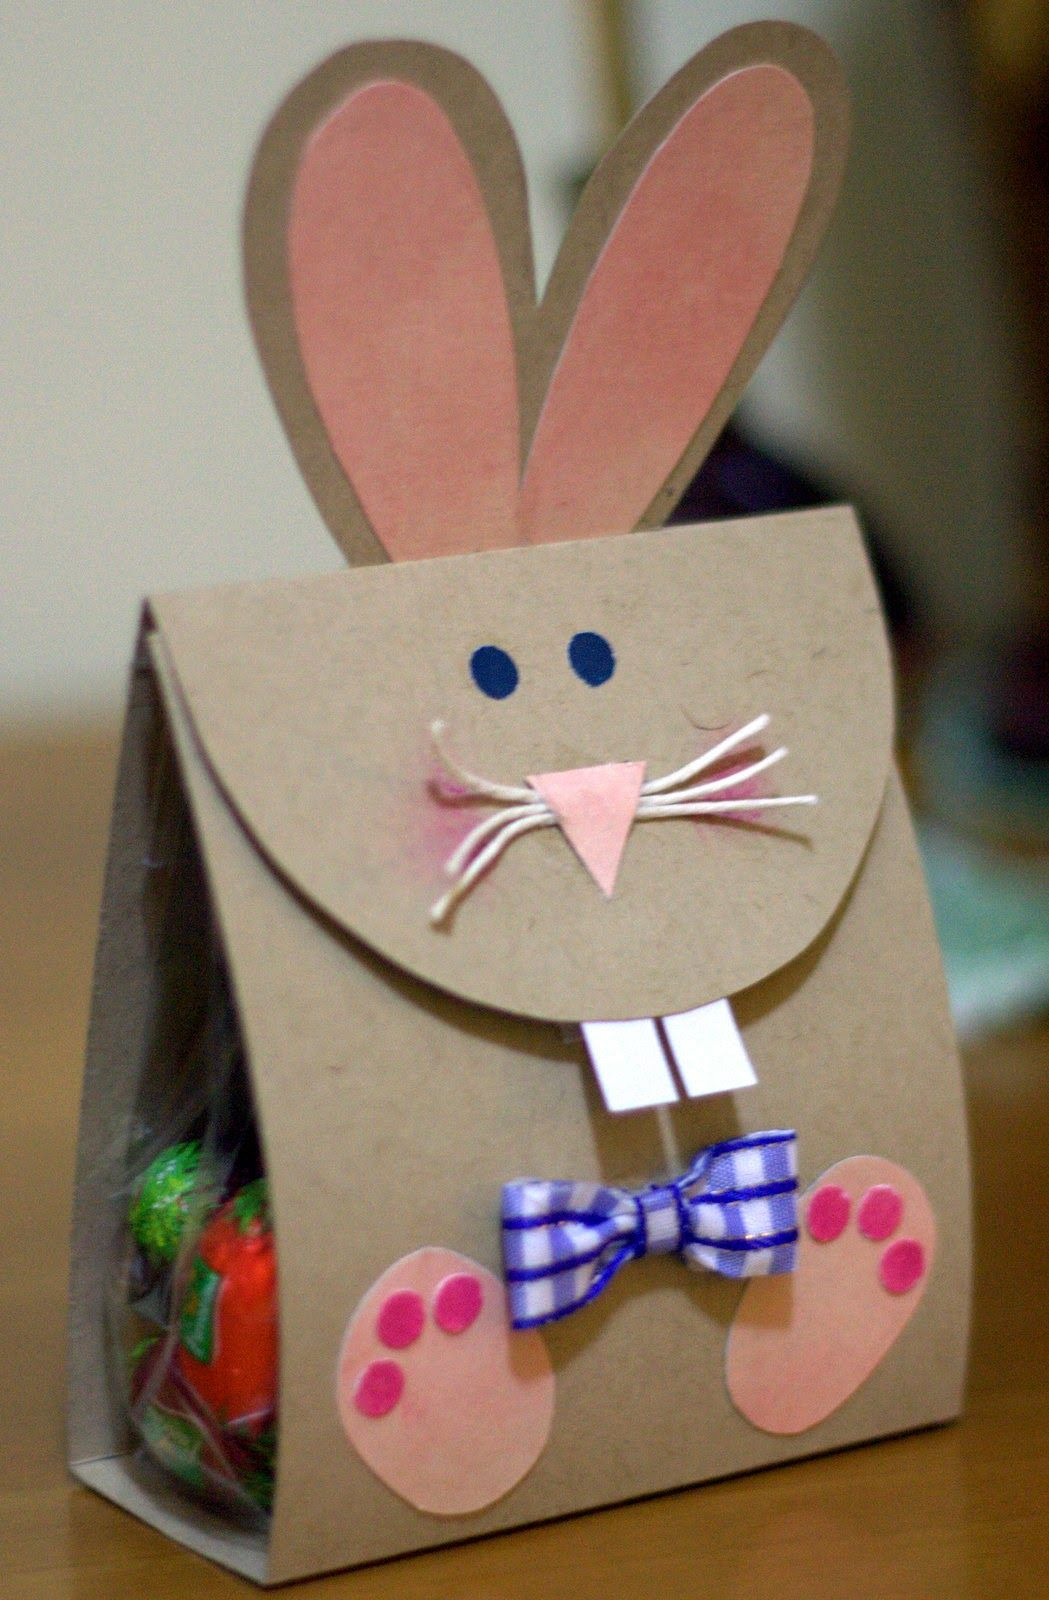 Ideas Originales Para Regalar En Estas Pascuas Easter - Ideas-originales-manualidades